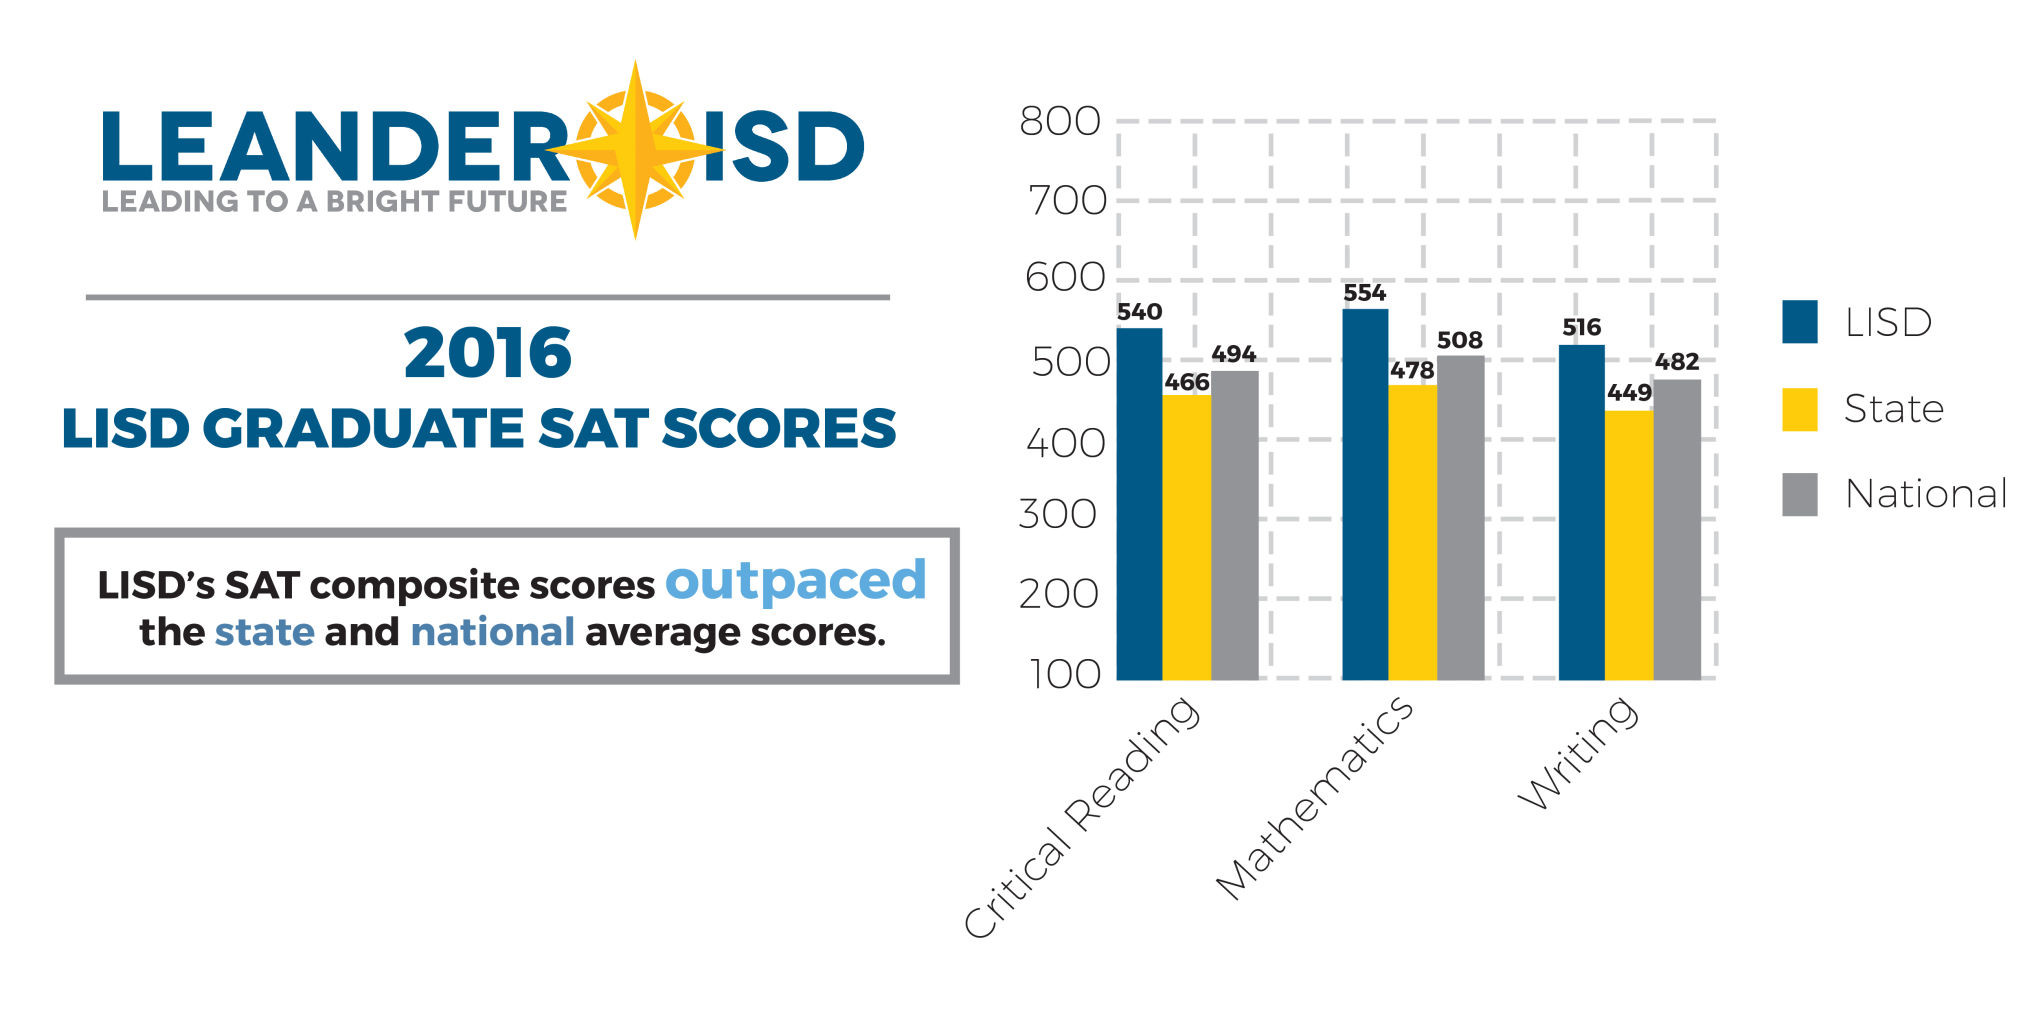 Leander ISD graduates scored above state and national averages on SAT.